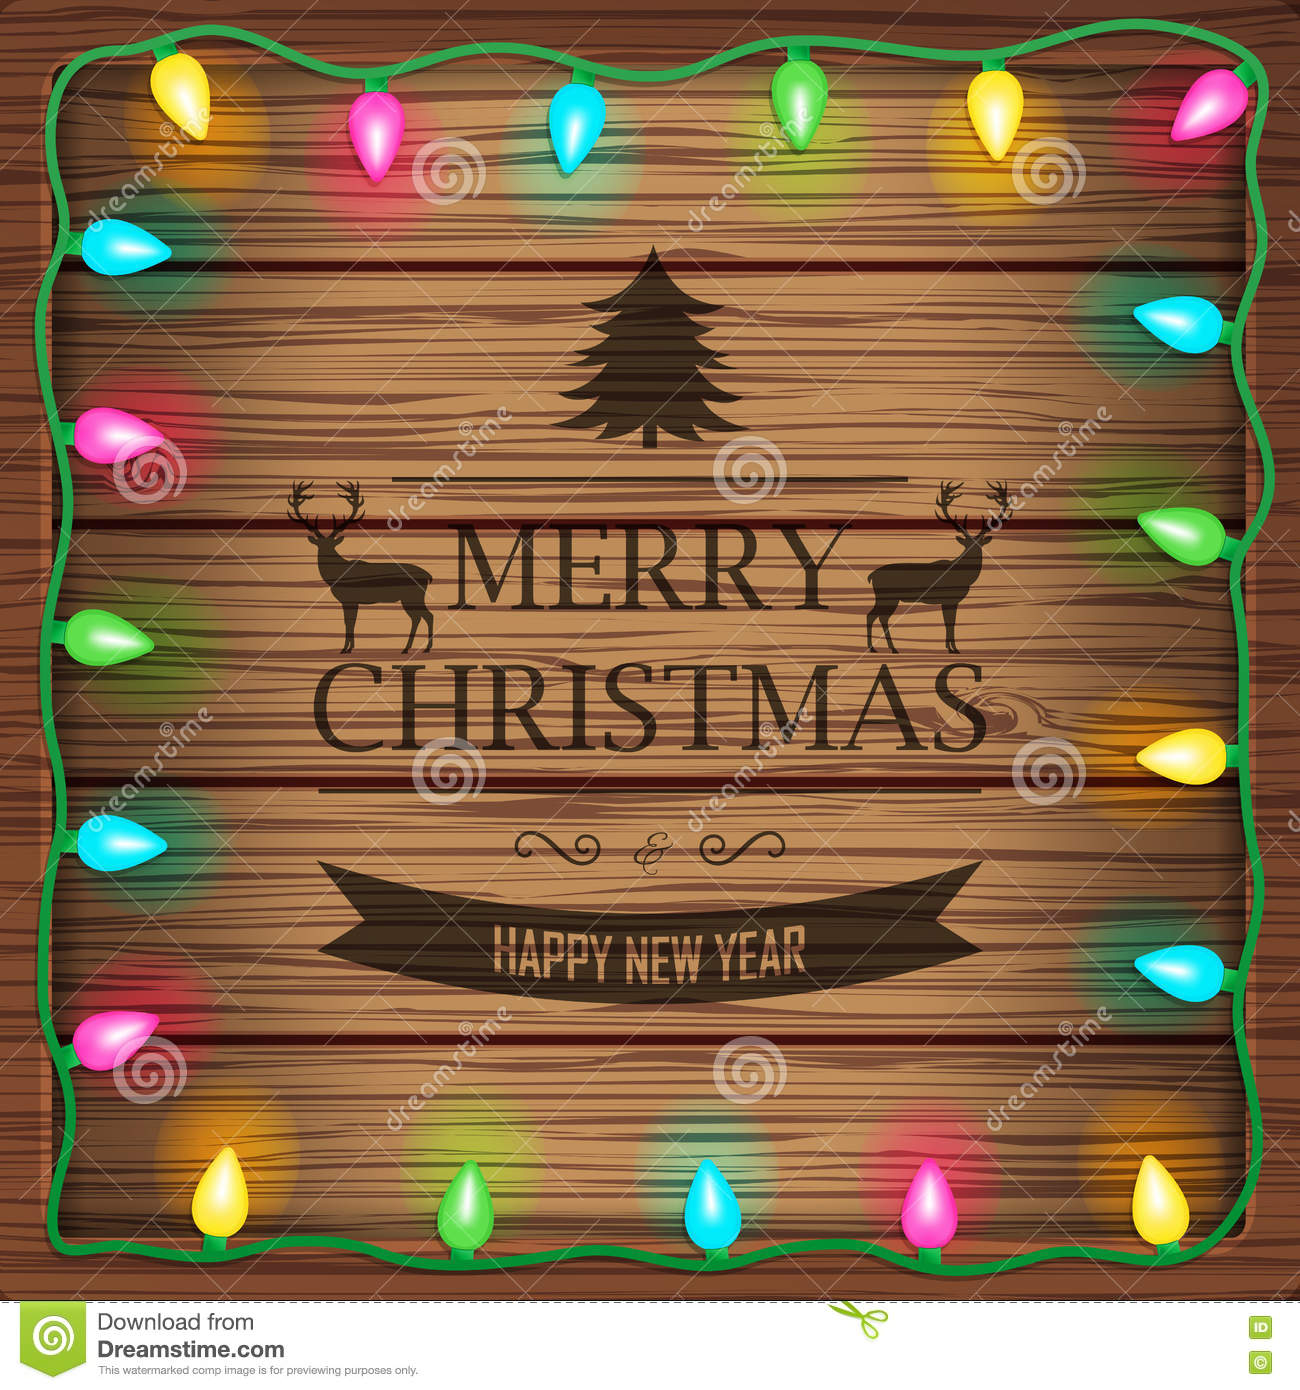 wooden background with christmas lights and vintage typography sign merry christmas and happy new year wishes vector illustration